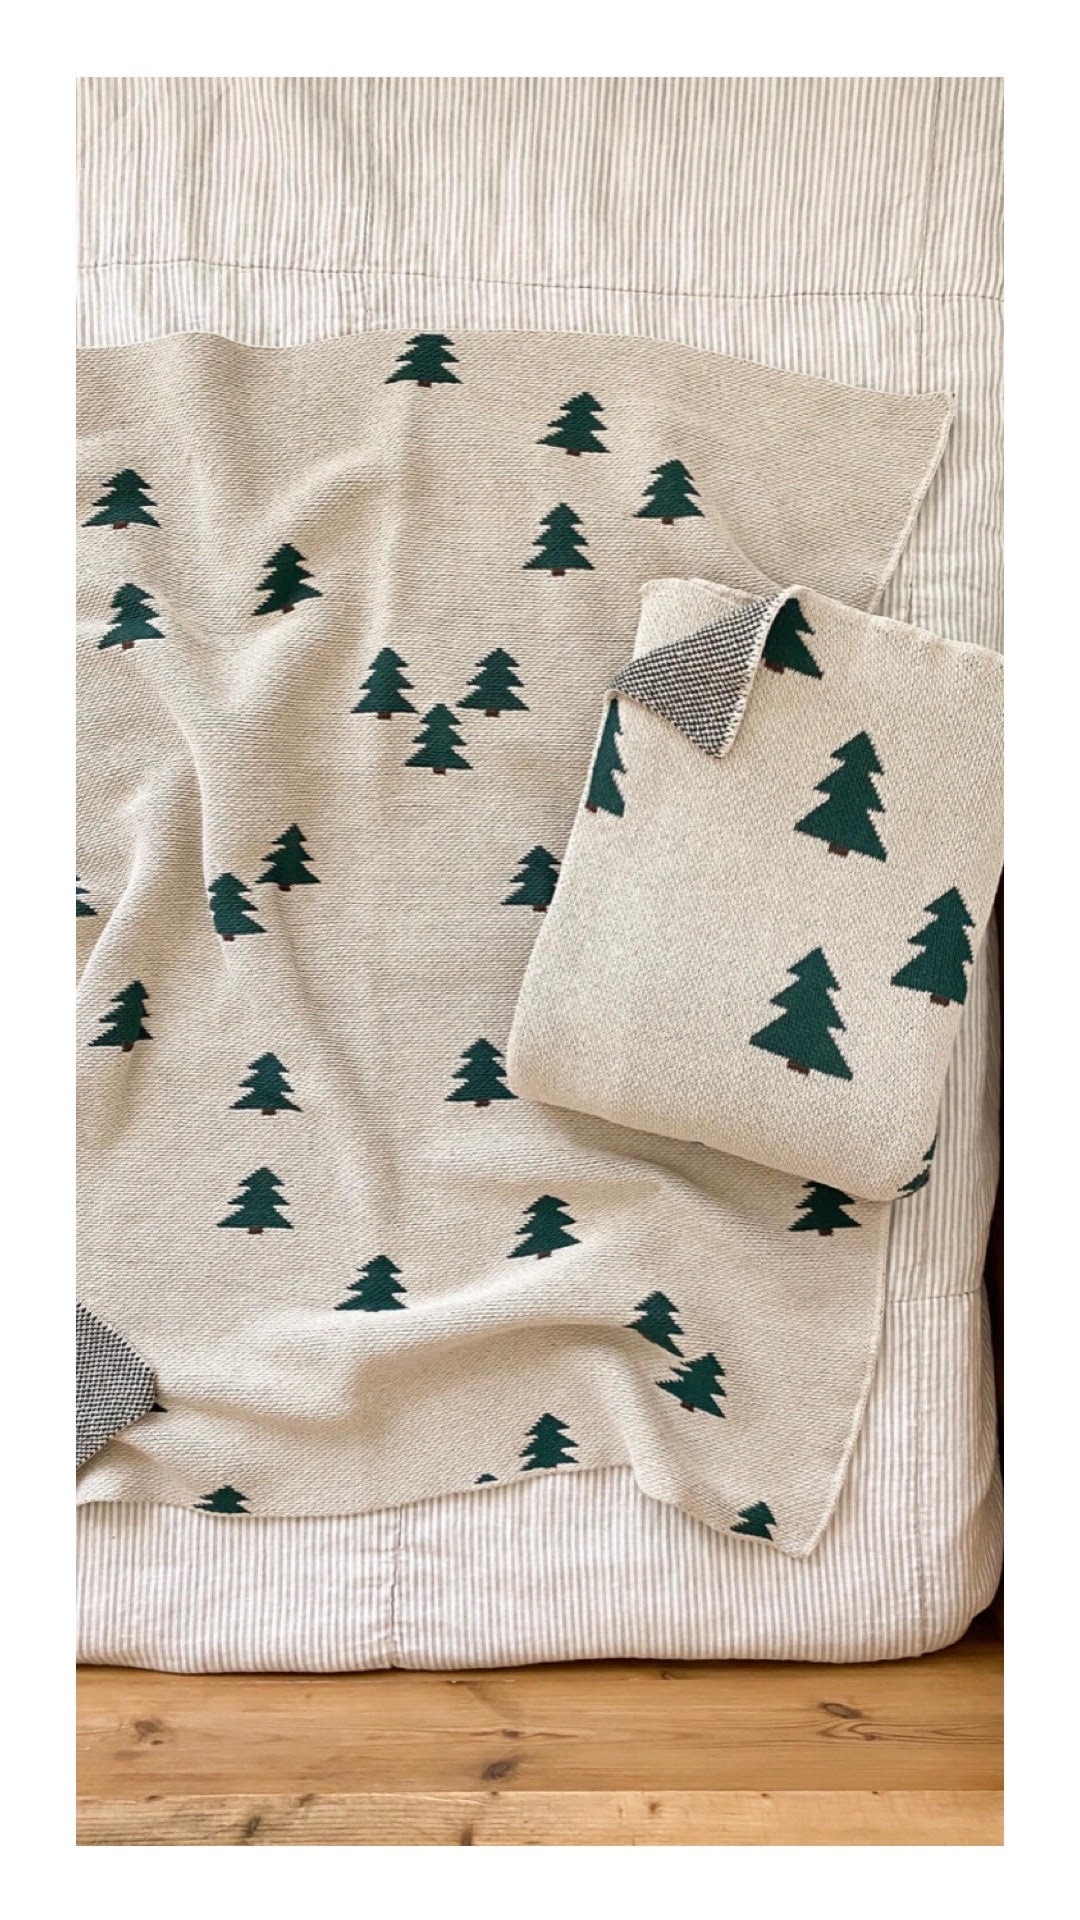 Fin & Vince Knit Blanket, Pine Tree